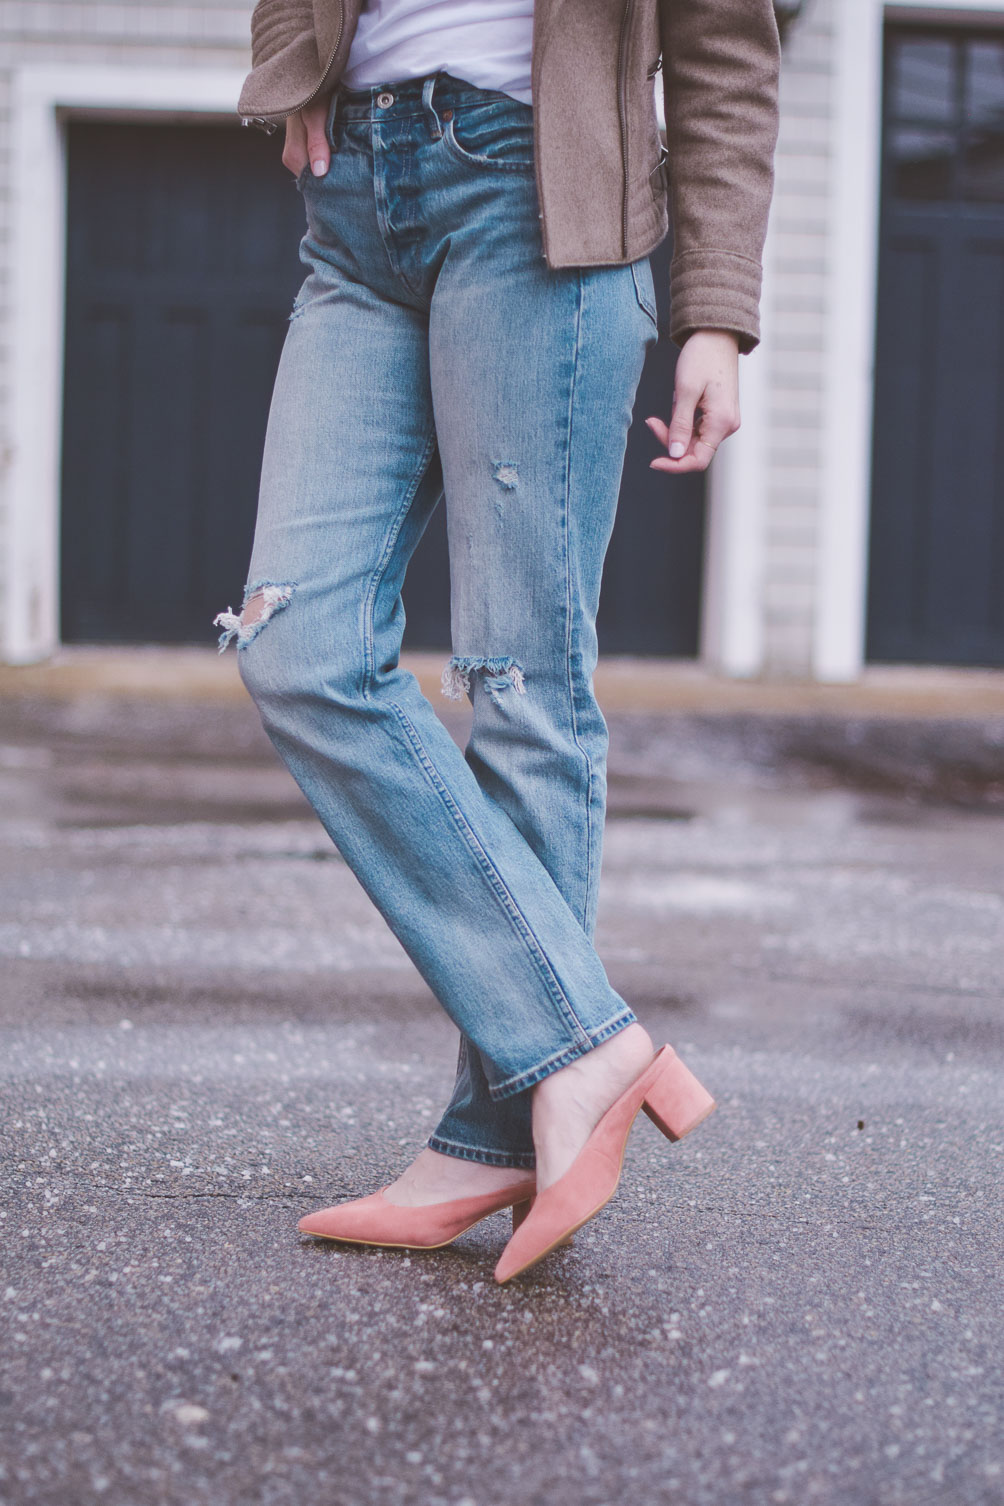 wearing Gap x Cone Denim high rise straight jeans with a shearling collar jacket, graphic tee, and pink block heel mules